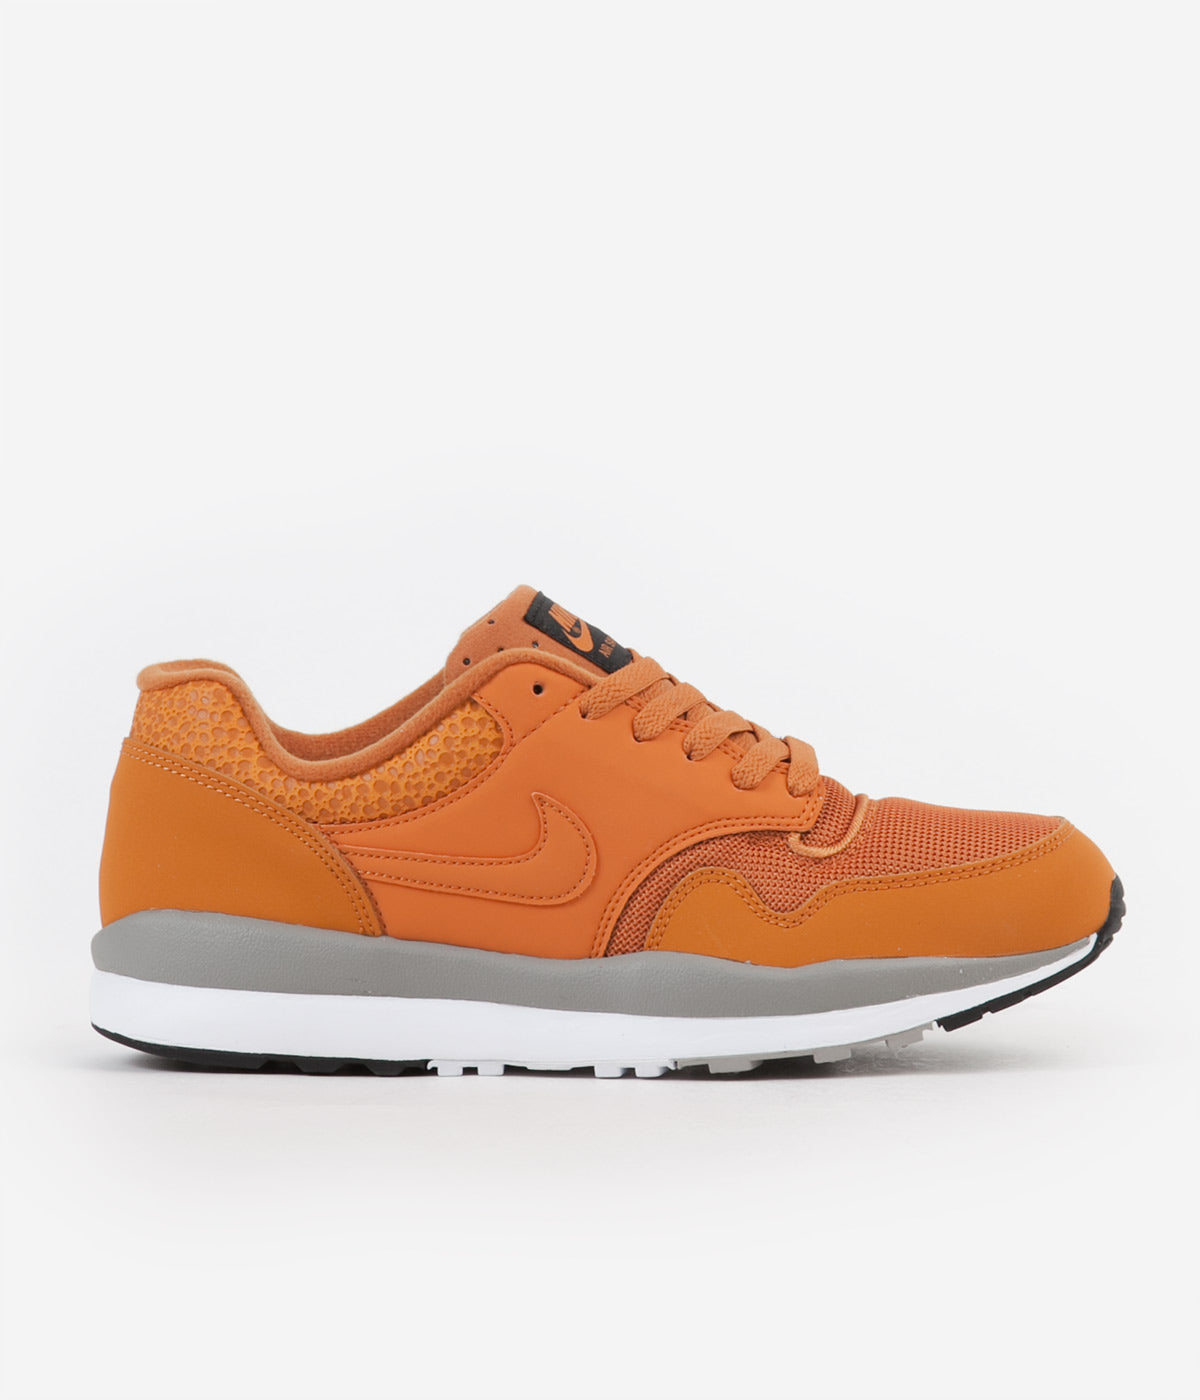 separation shoes c5080 2f60d ... Nike Air Safari Shoes - Monarch  Monarch - Cobblestone - White ...